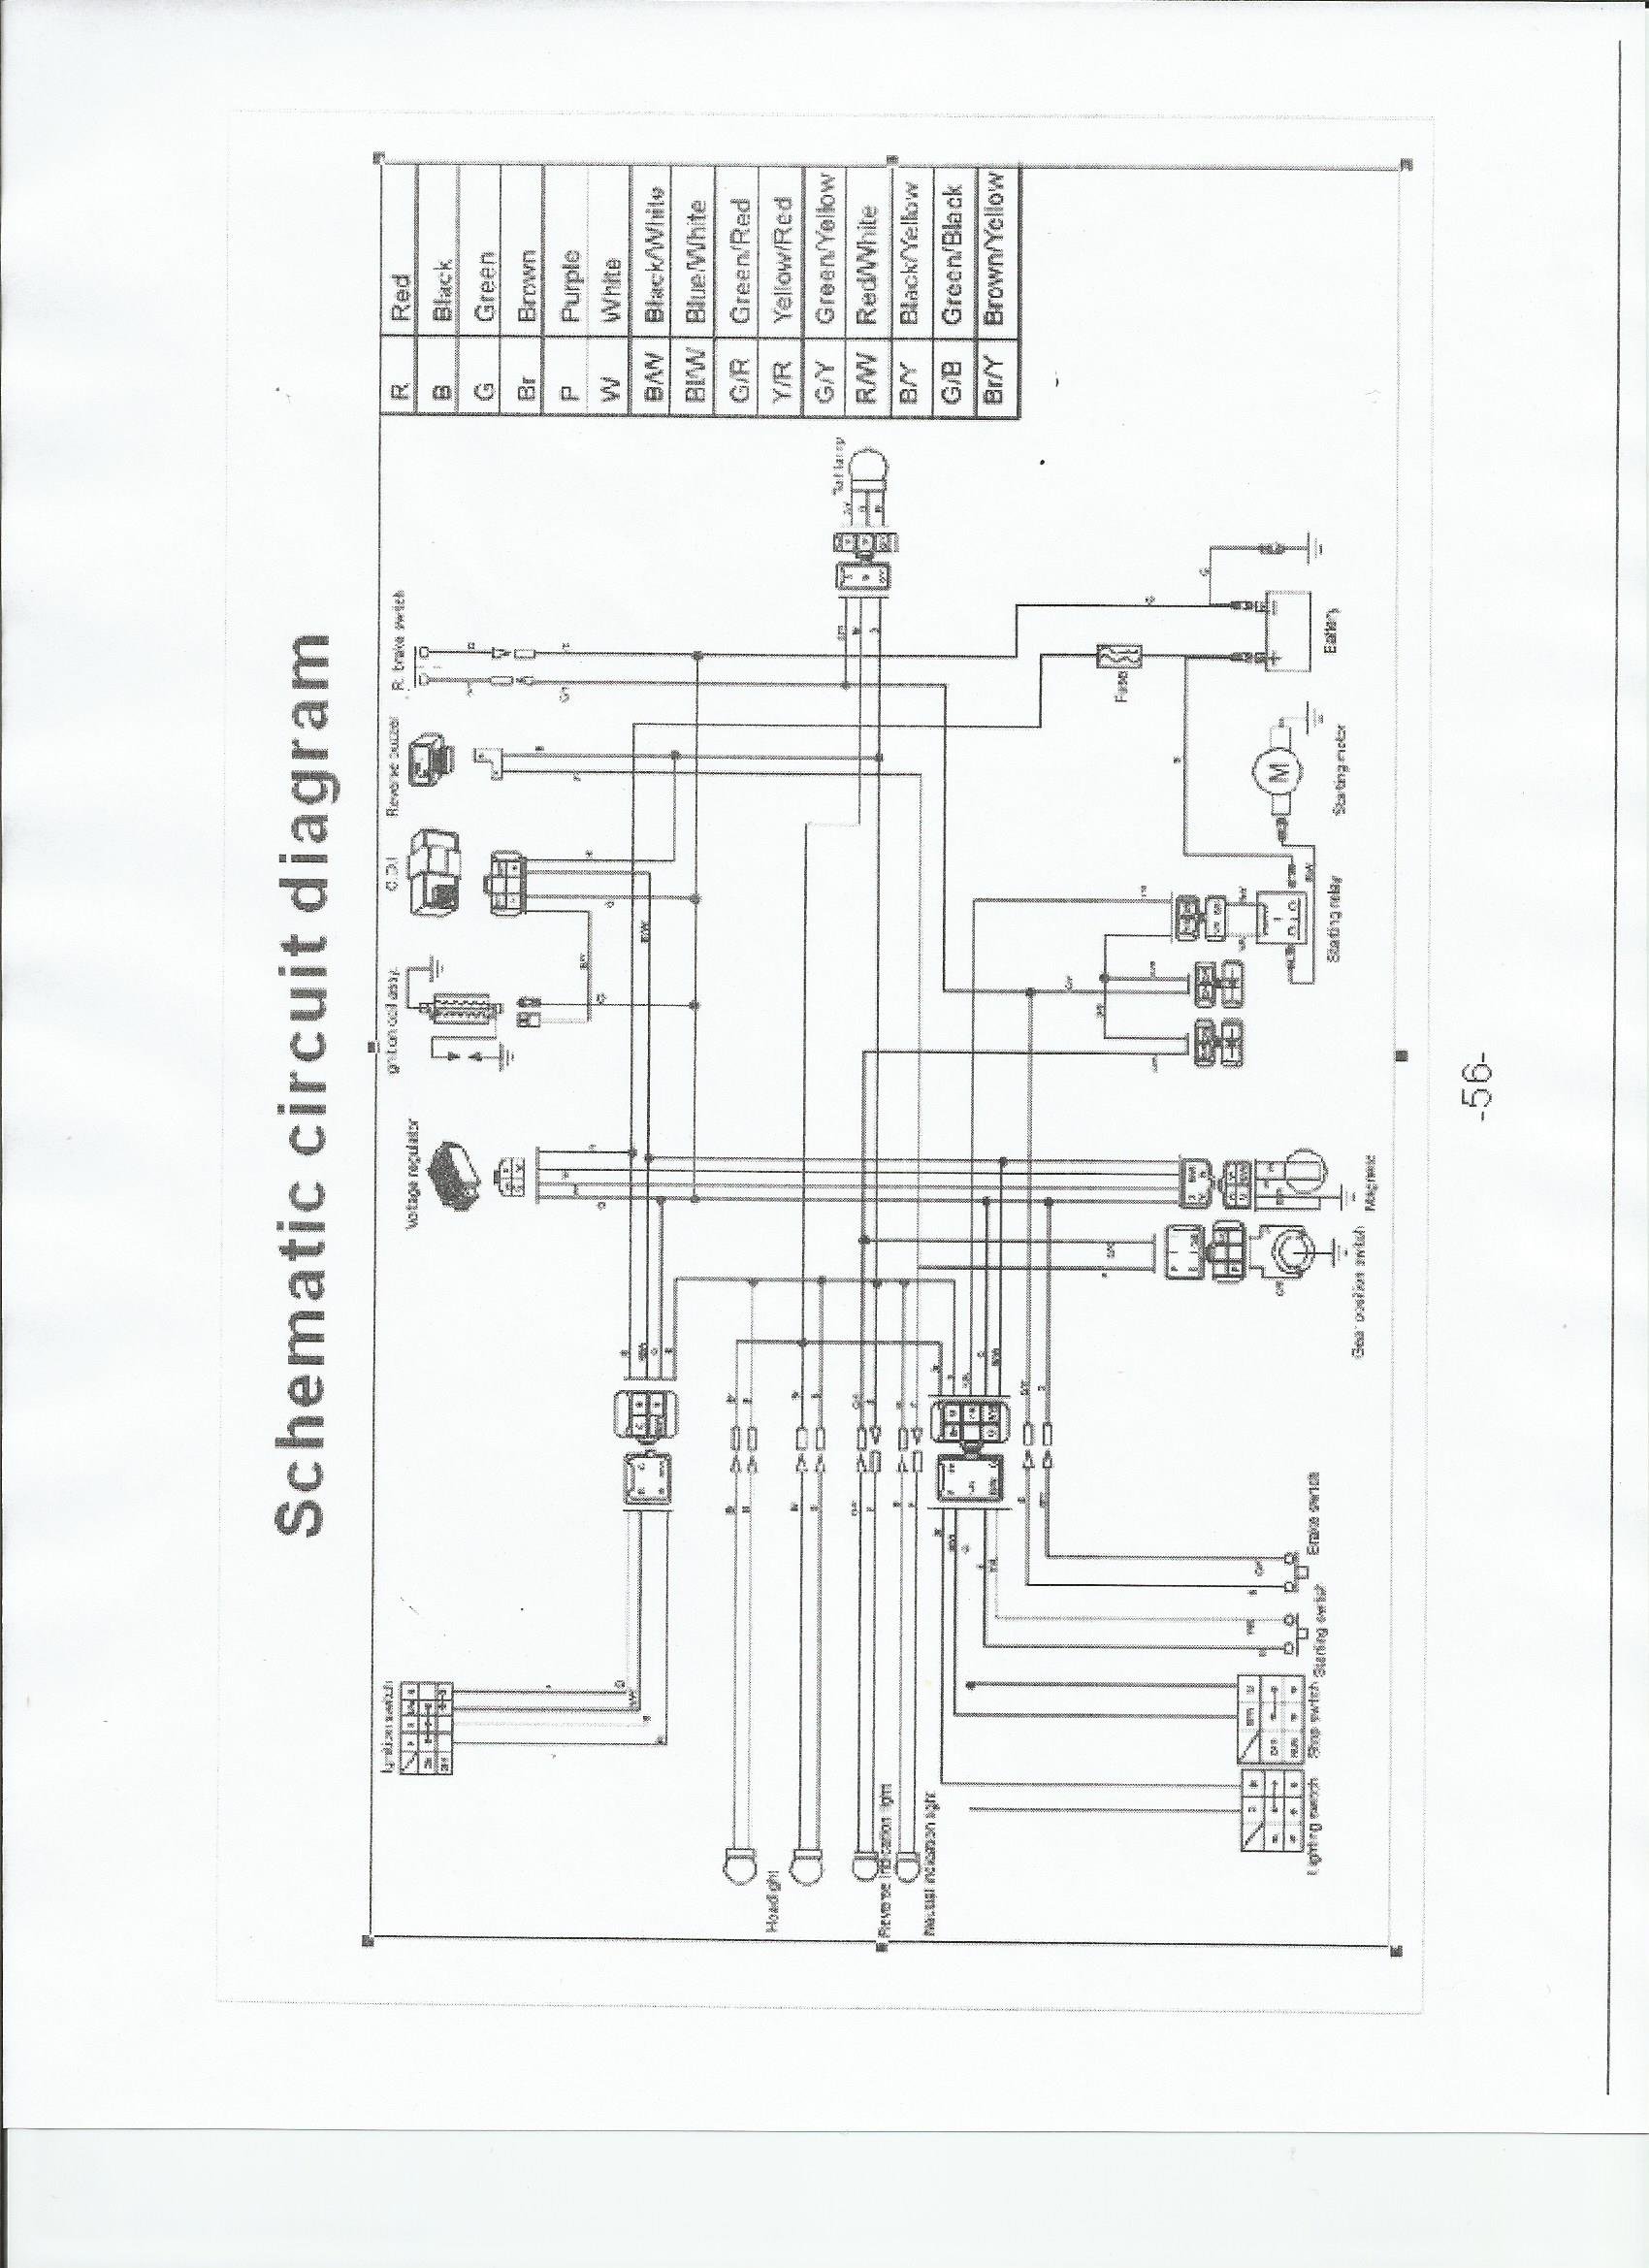 Tao Tao 110 Atv Wiring Diagram Apktodownload